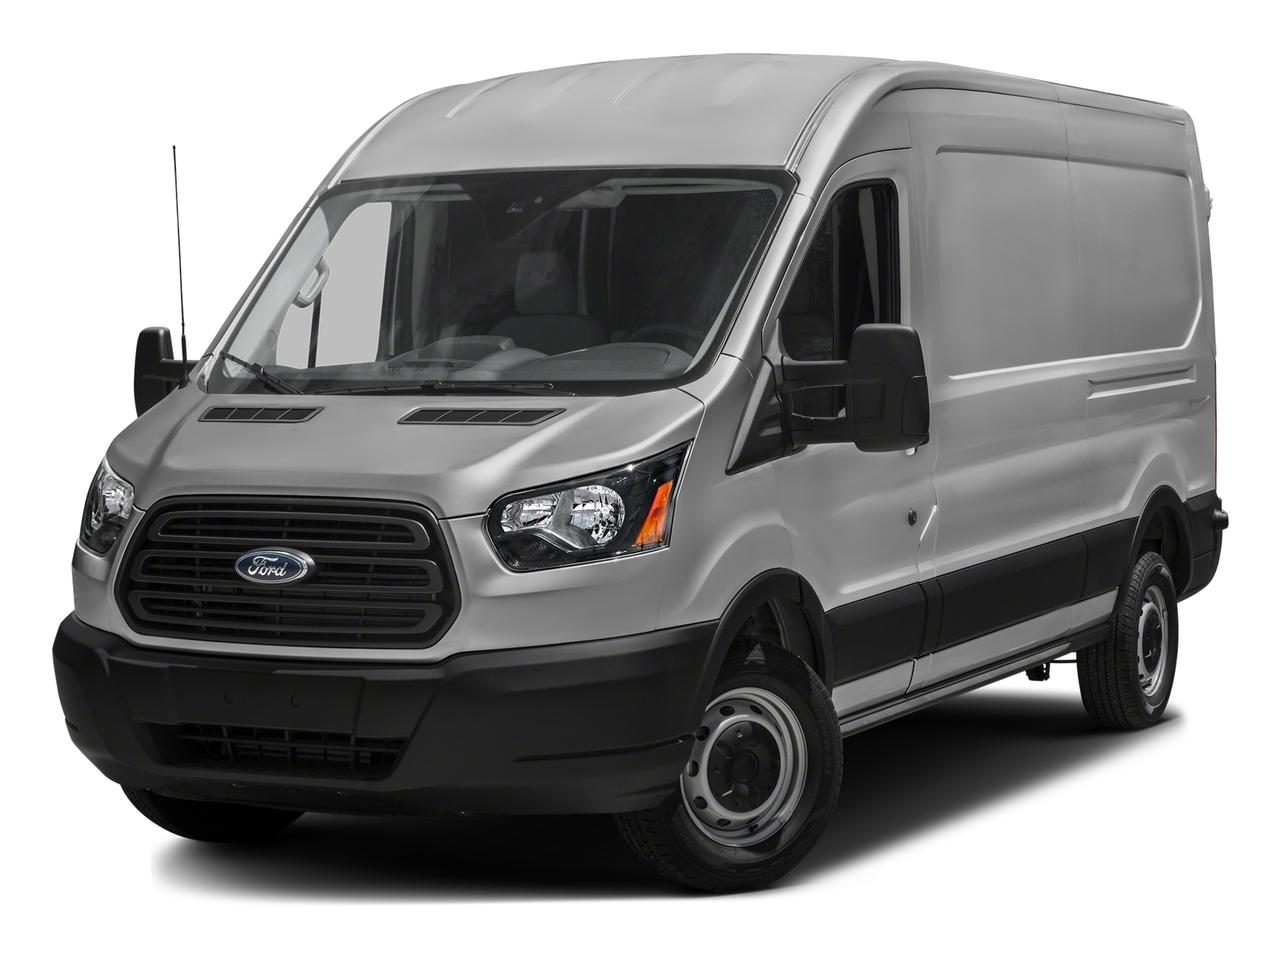 2016 Ford Transit Cargo Van Vehicle Photo in Joliet, IL 60435